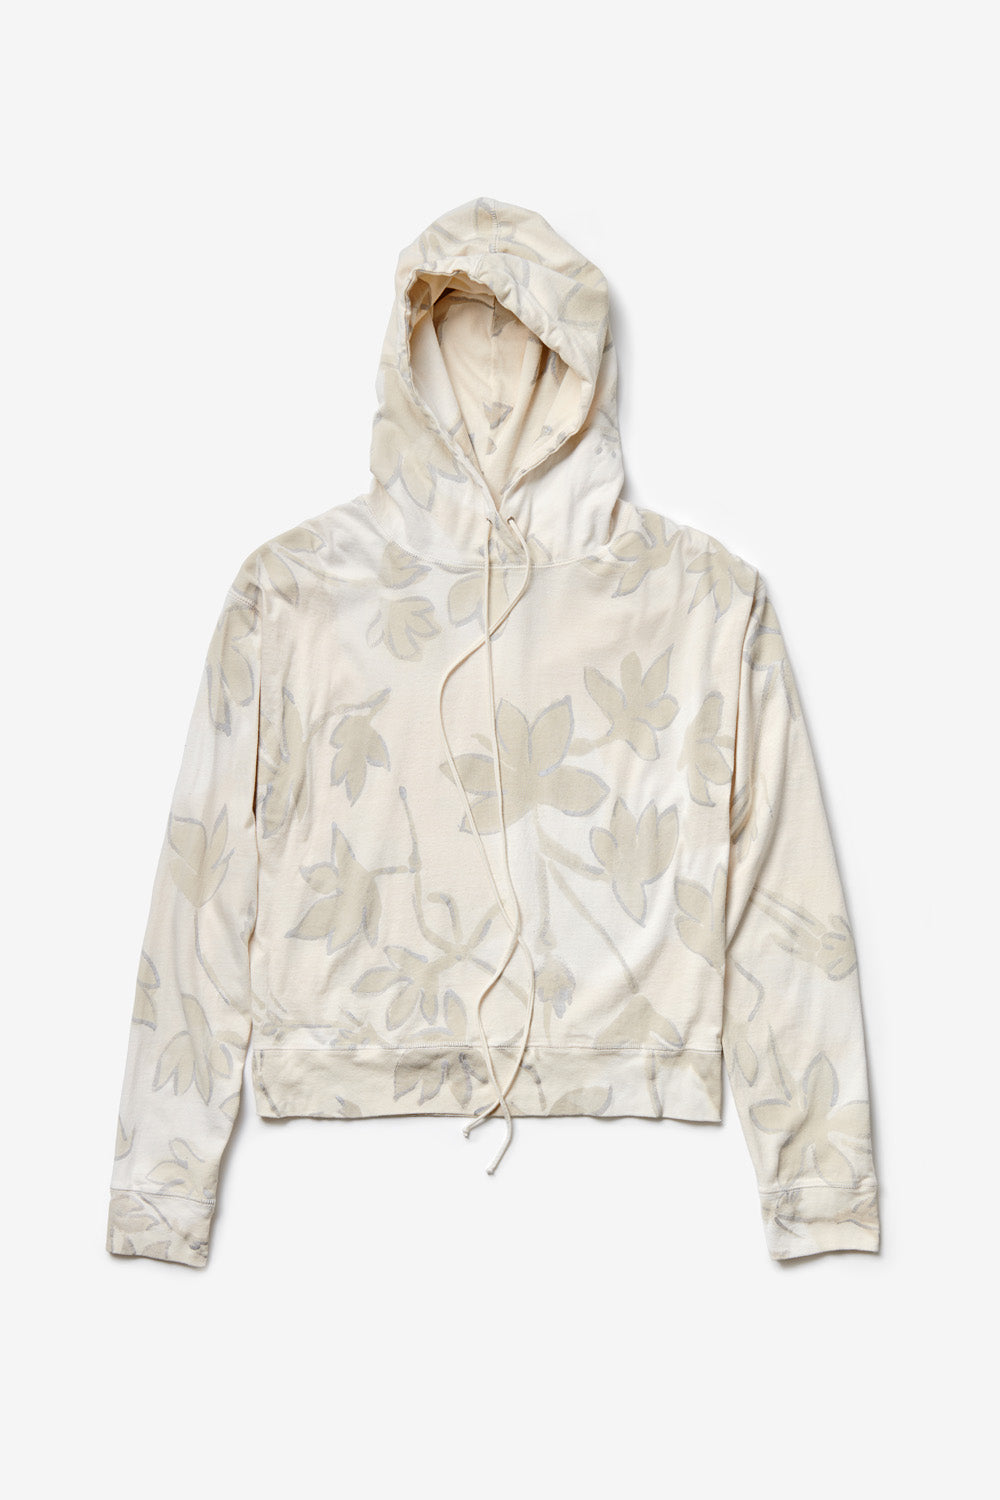 Alabama Chanin The Hoodie Organic Cotton Top with Hood in Natural Floral Print